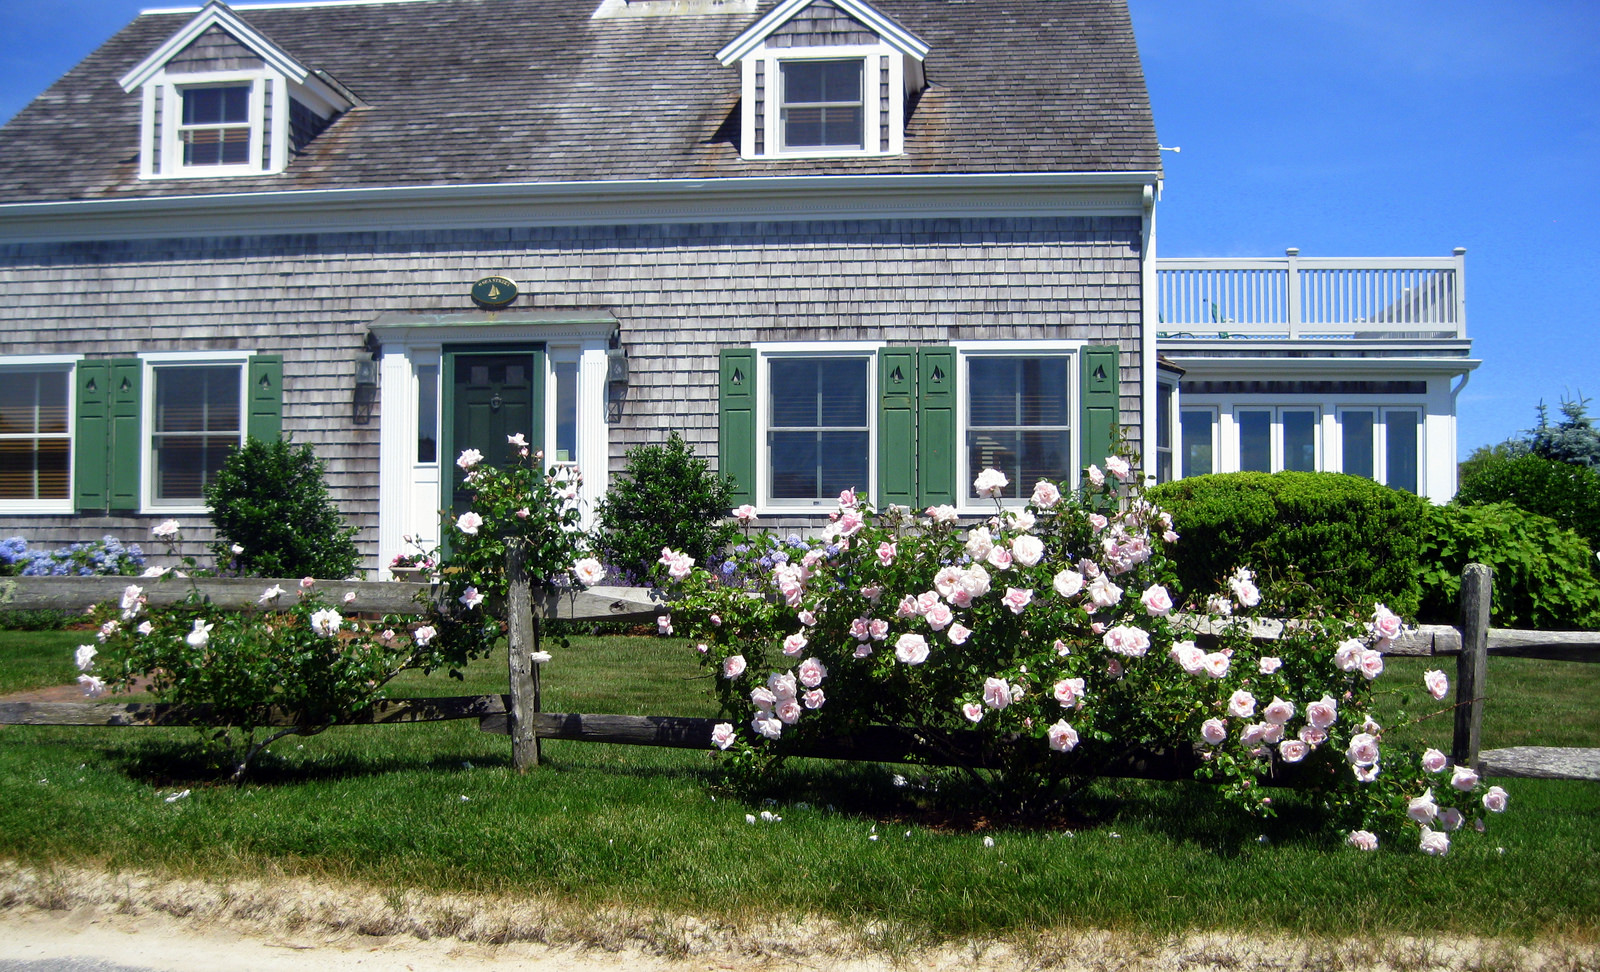 Flickr user fullc0de - Porch - cape cod houses